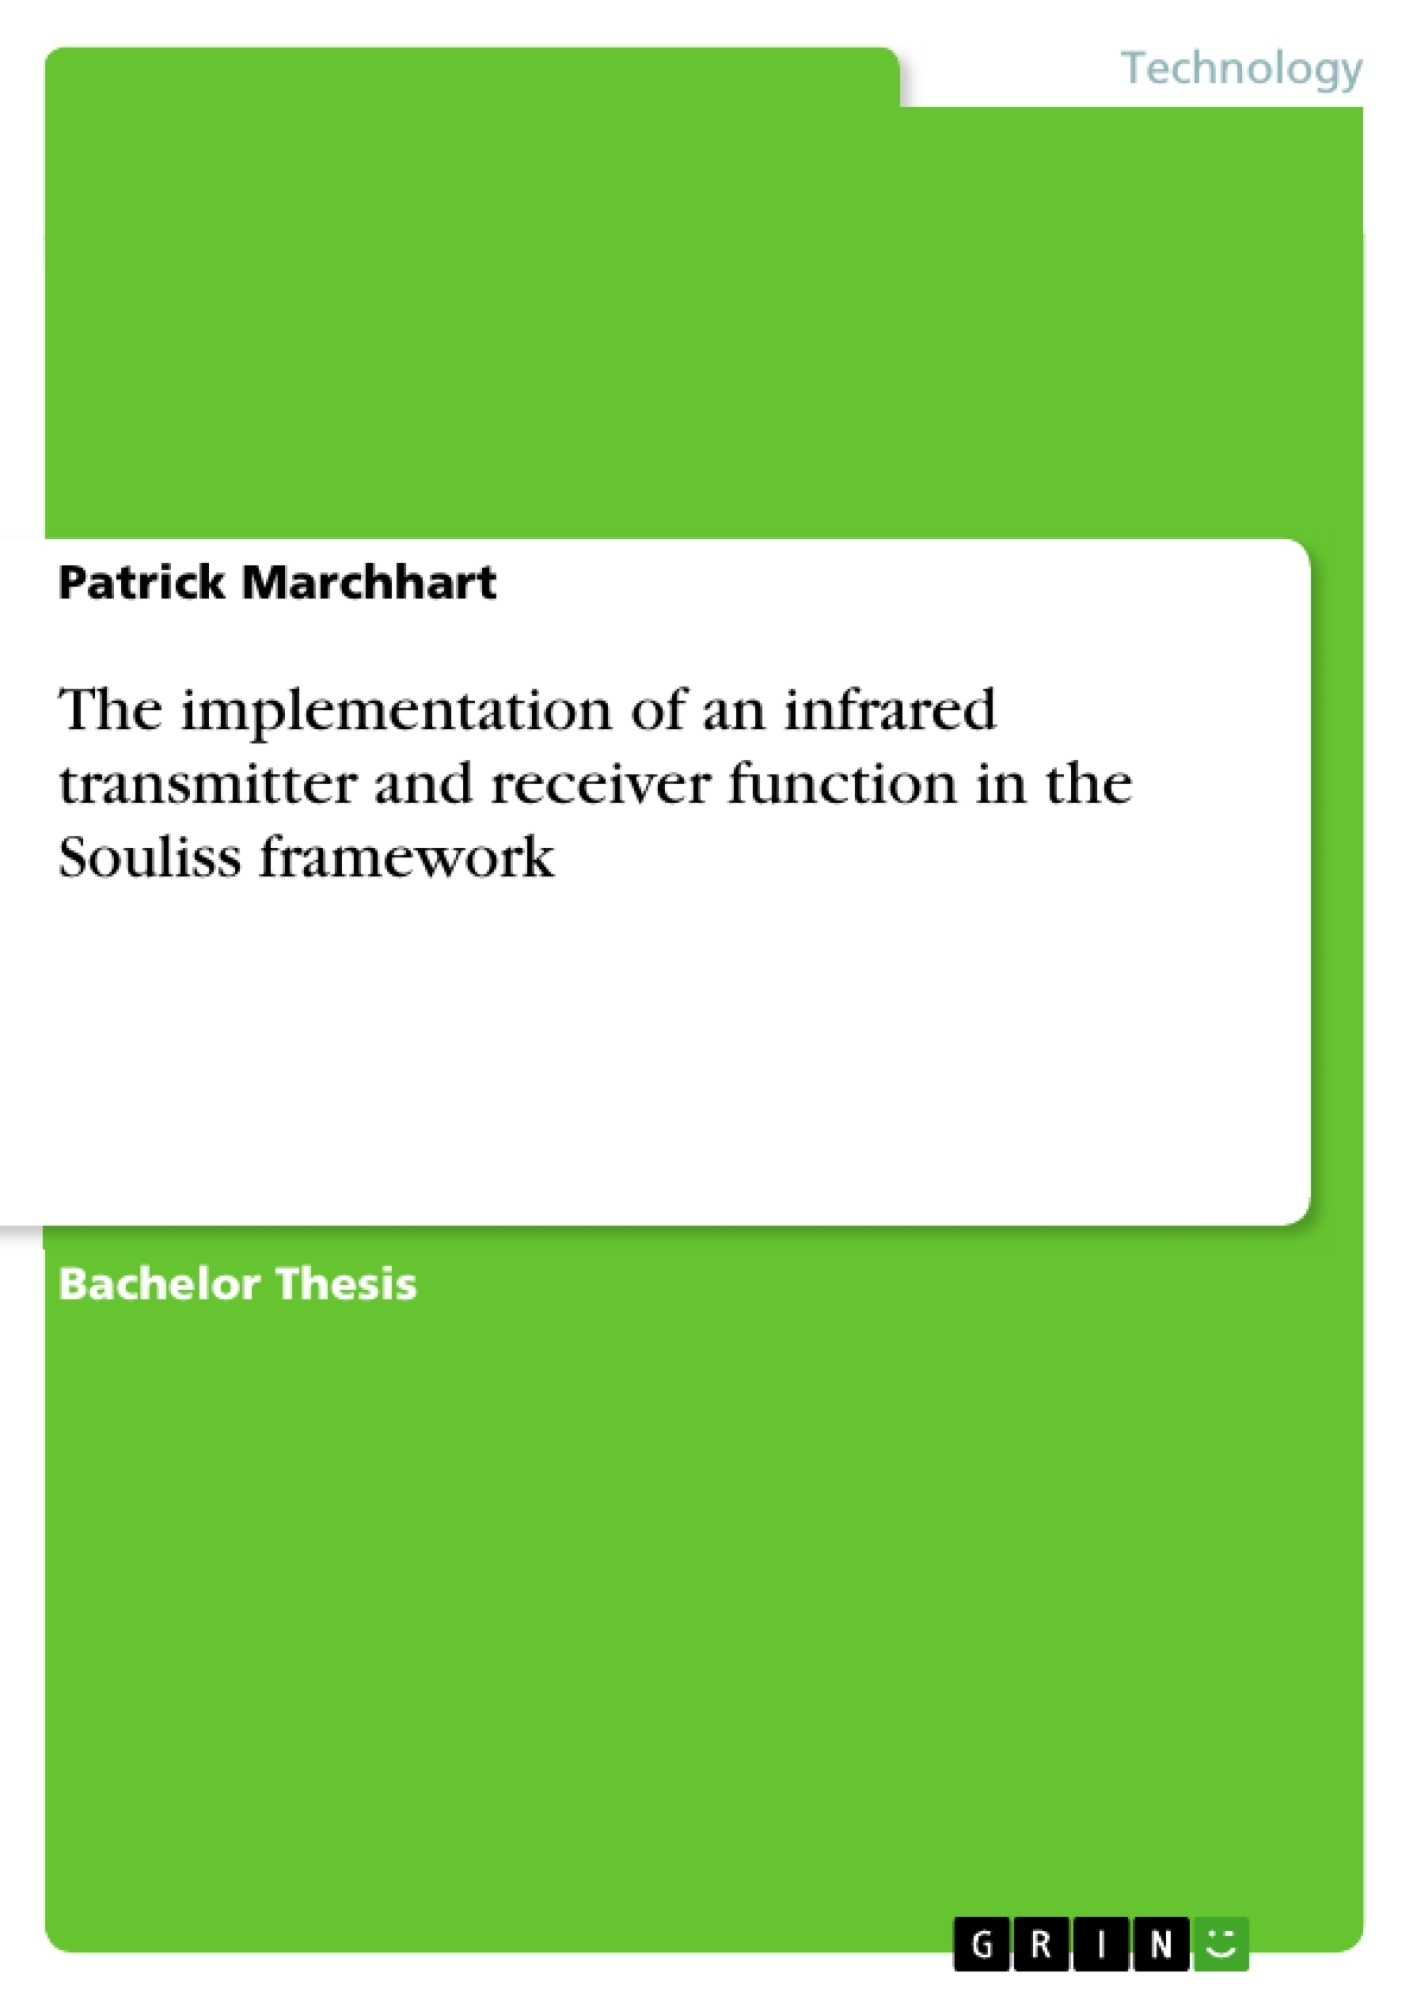 Title: The implementation of an infrared transmitter and receiver function in the Souliss framework